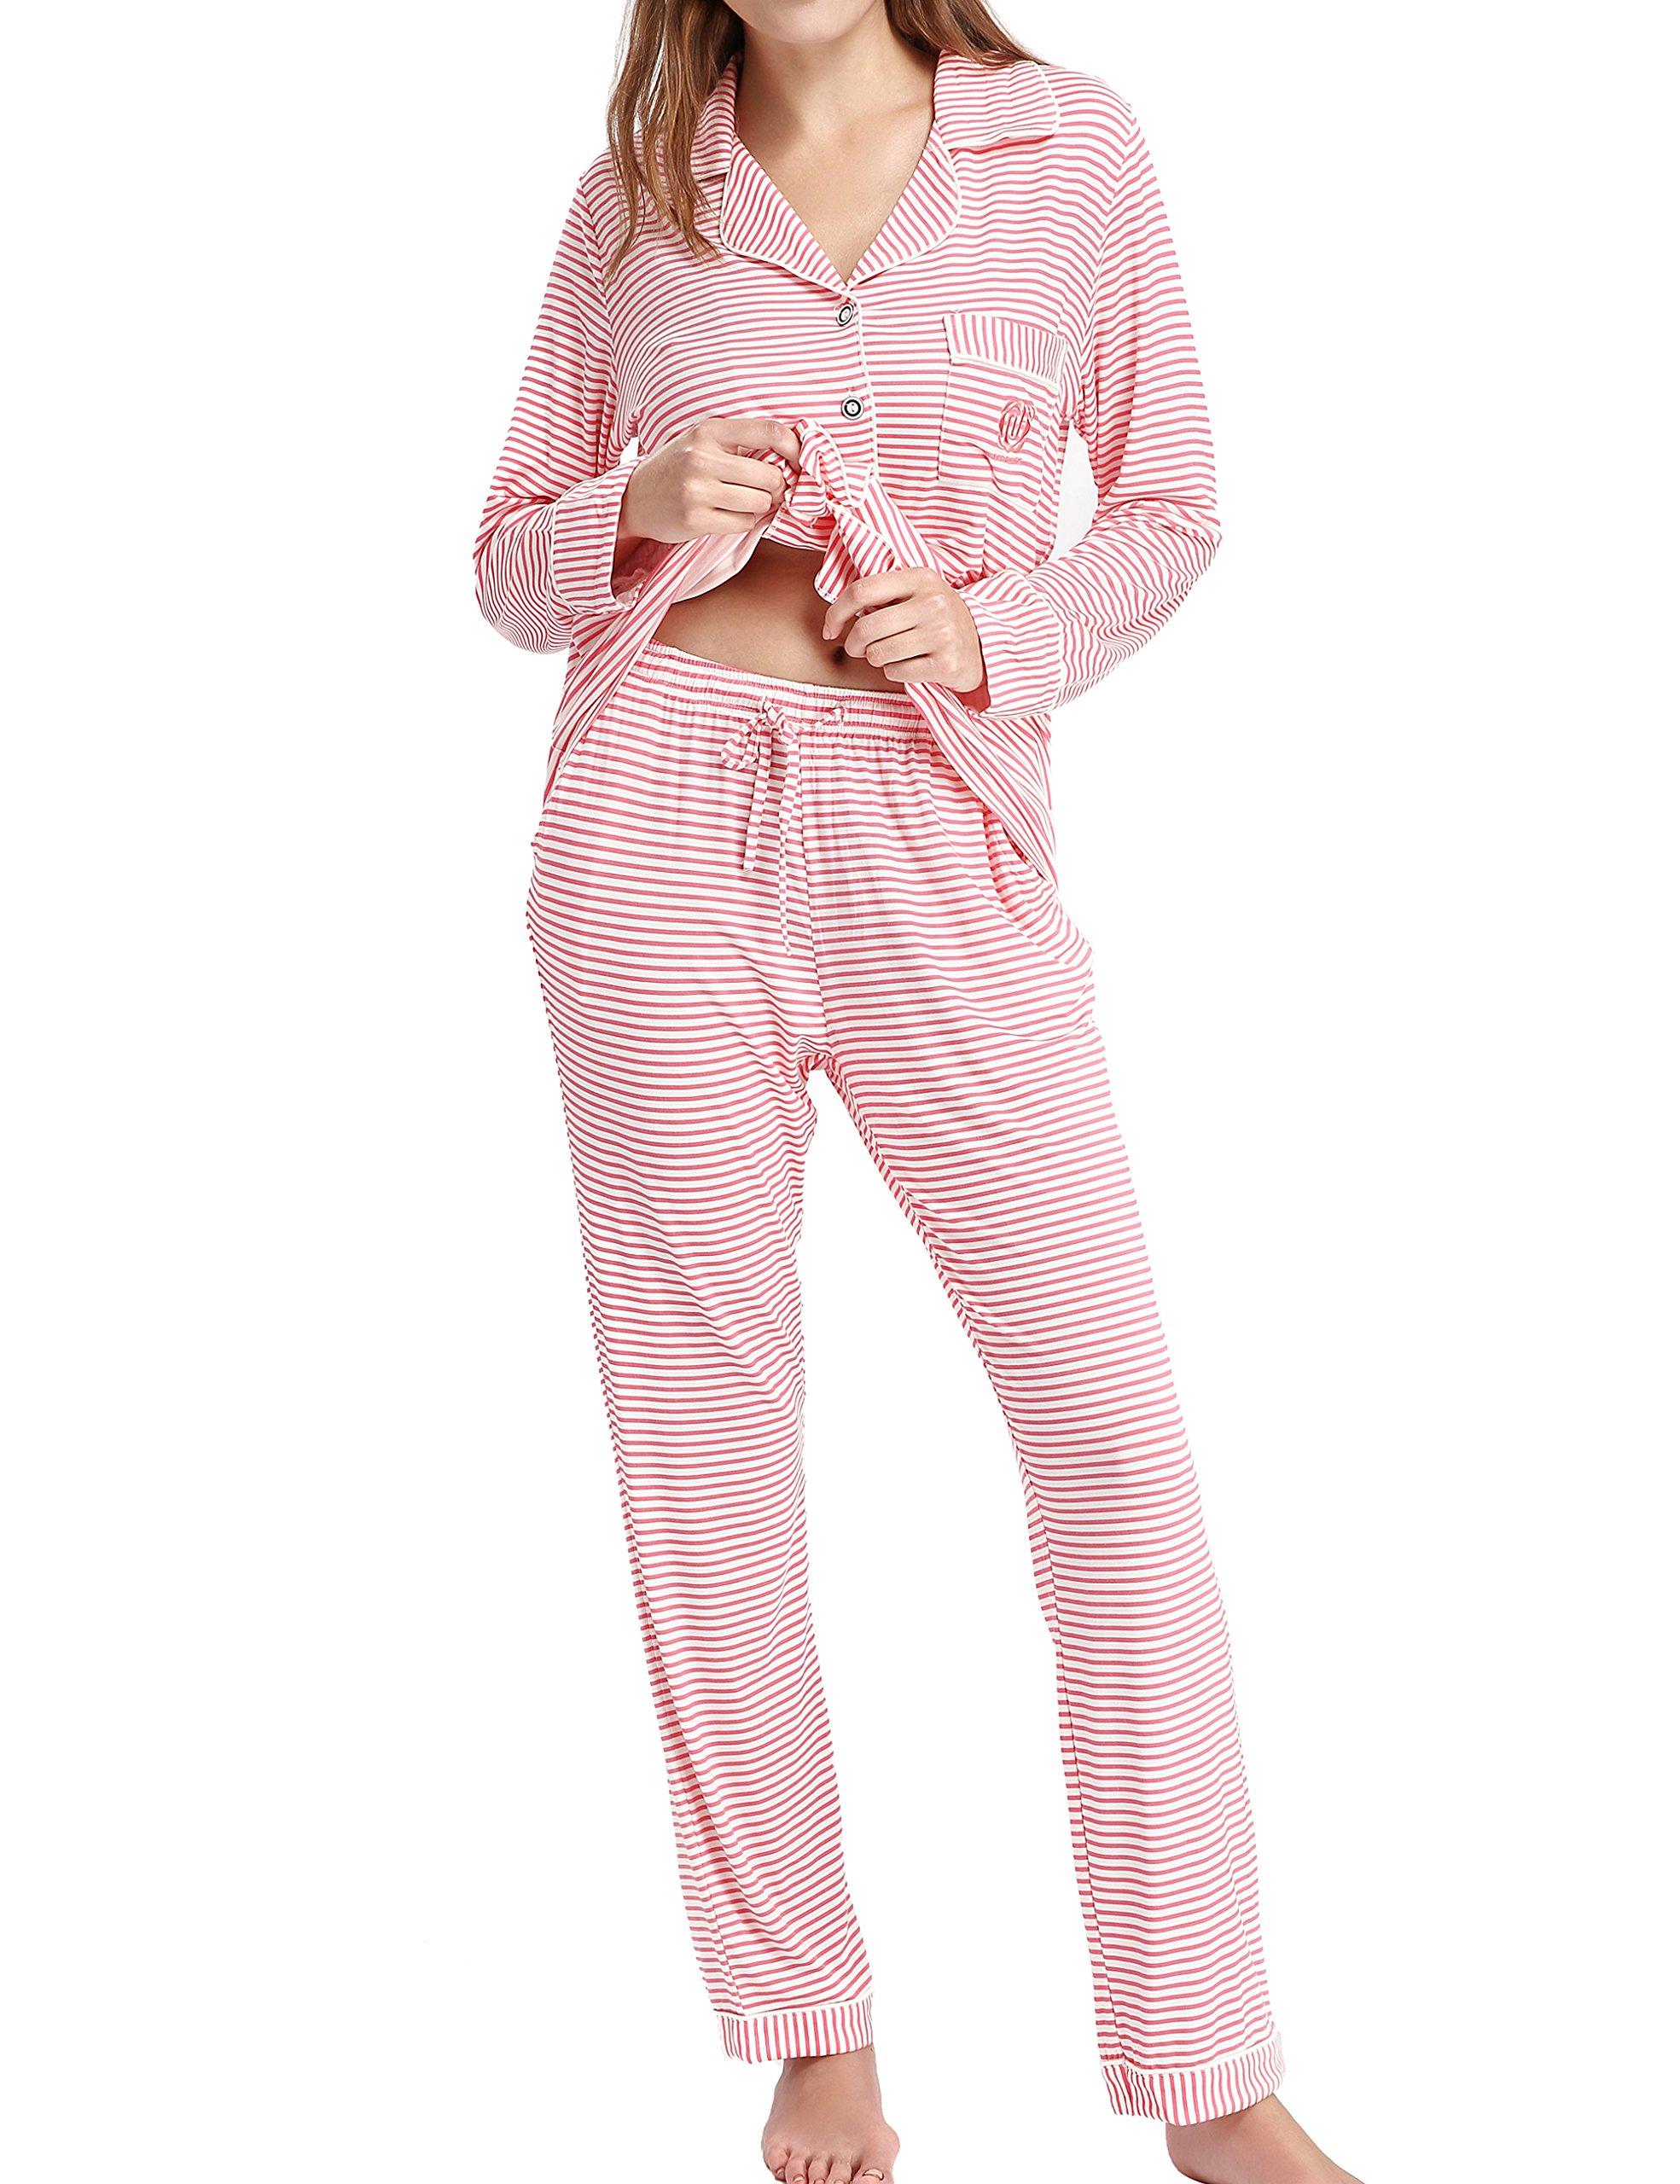 comfortable proponent your wearer says pajama what from to comforter most the birthday about shirt style t pajamas suit you articles